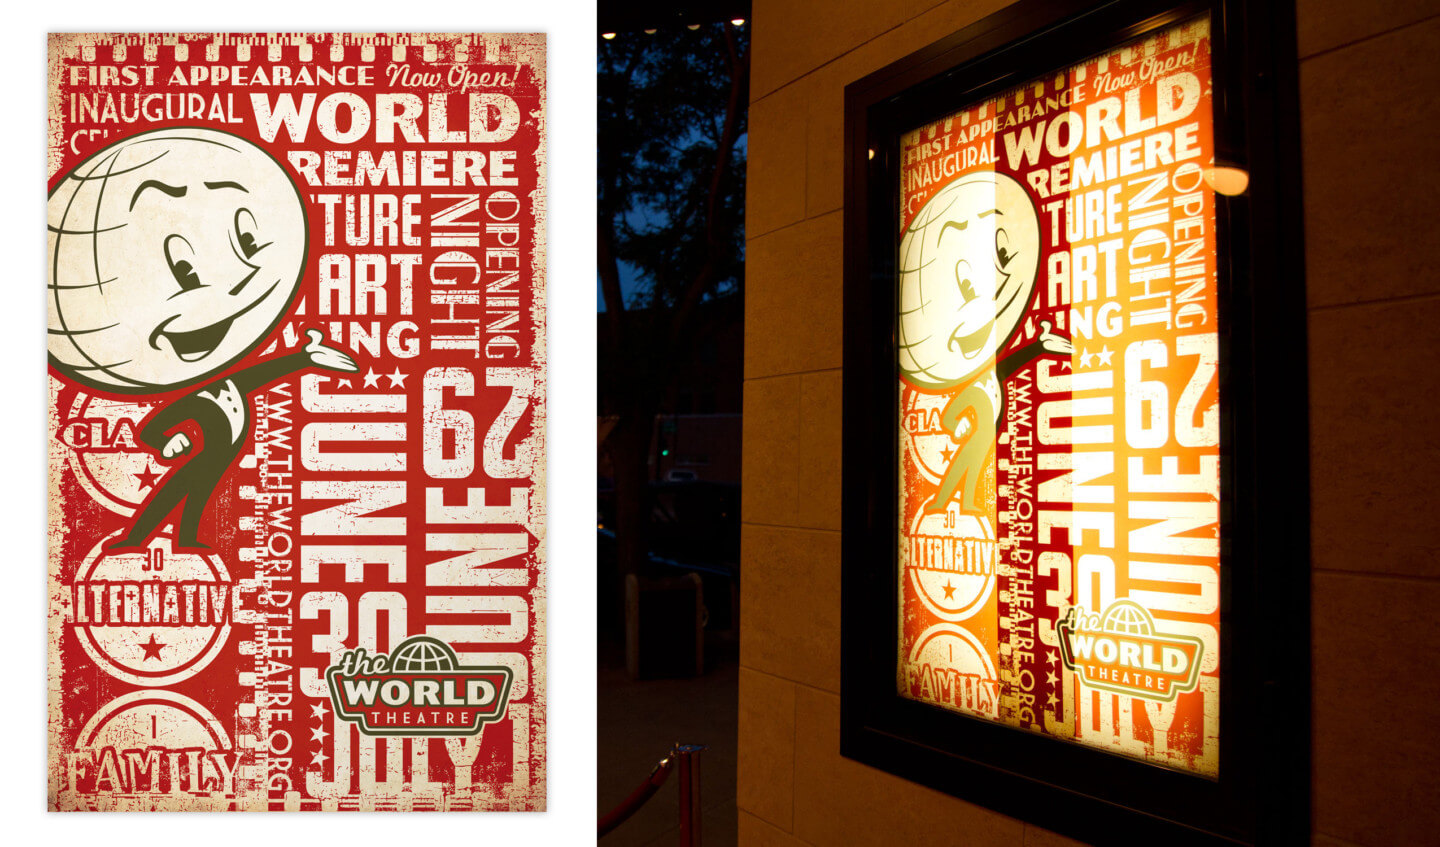 The World Theater grand opening poster